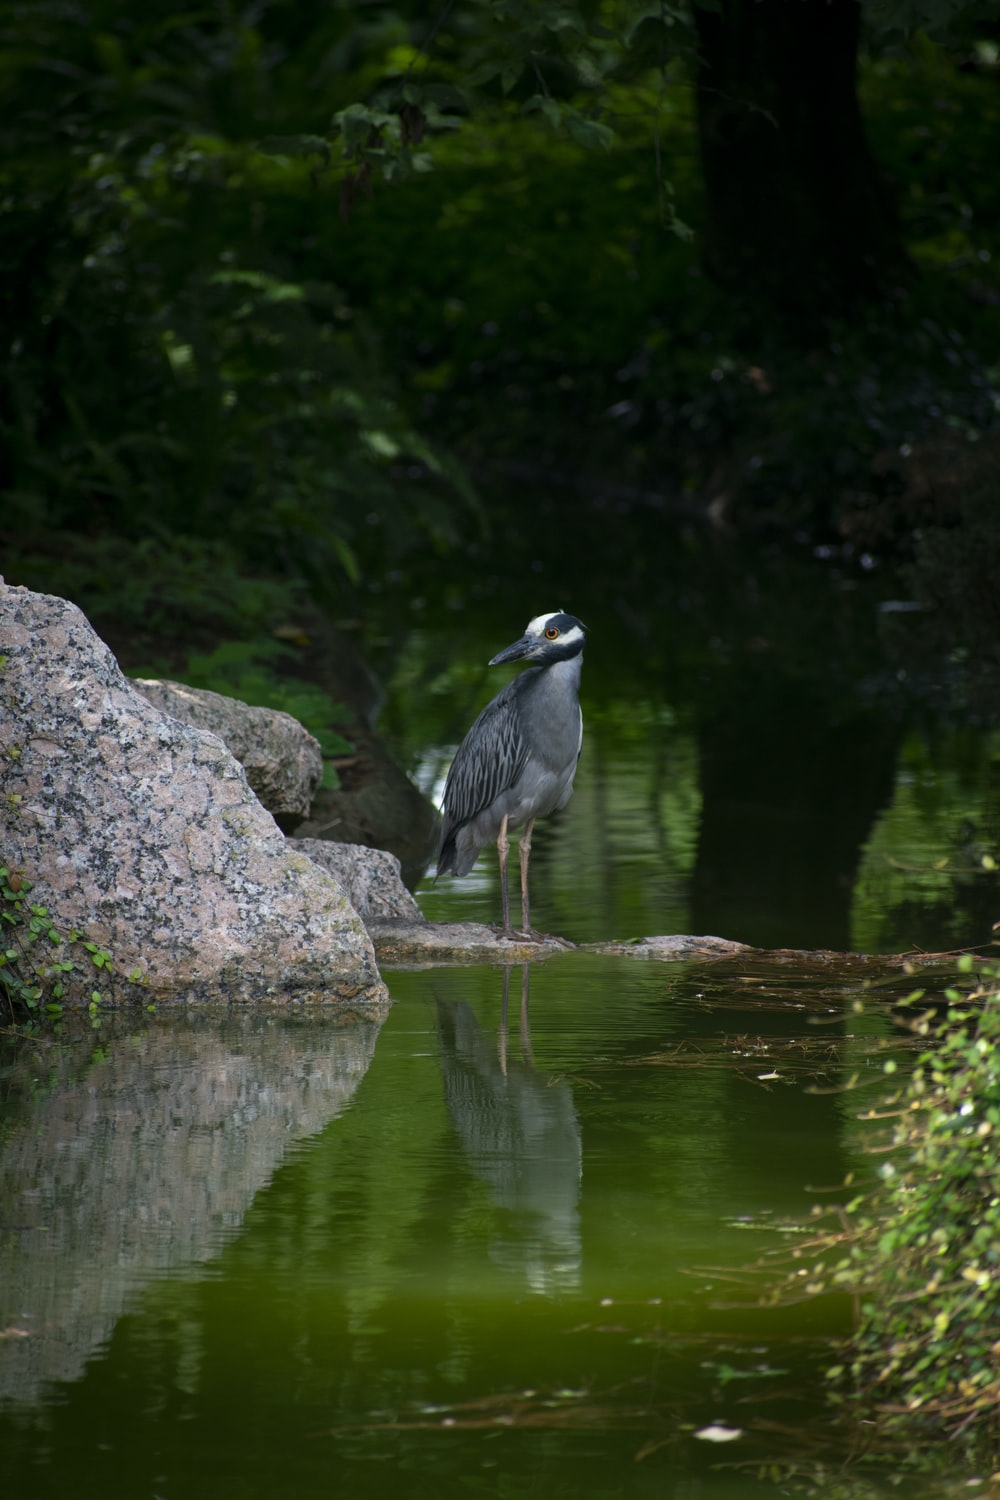 grey and white bird on grey rock near body of water during daytime